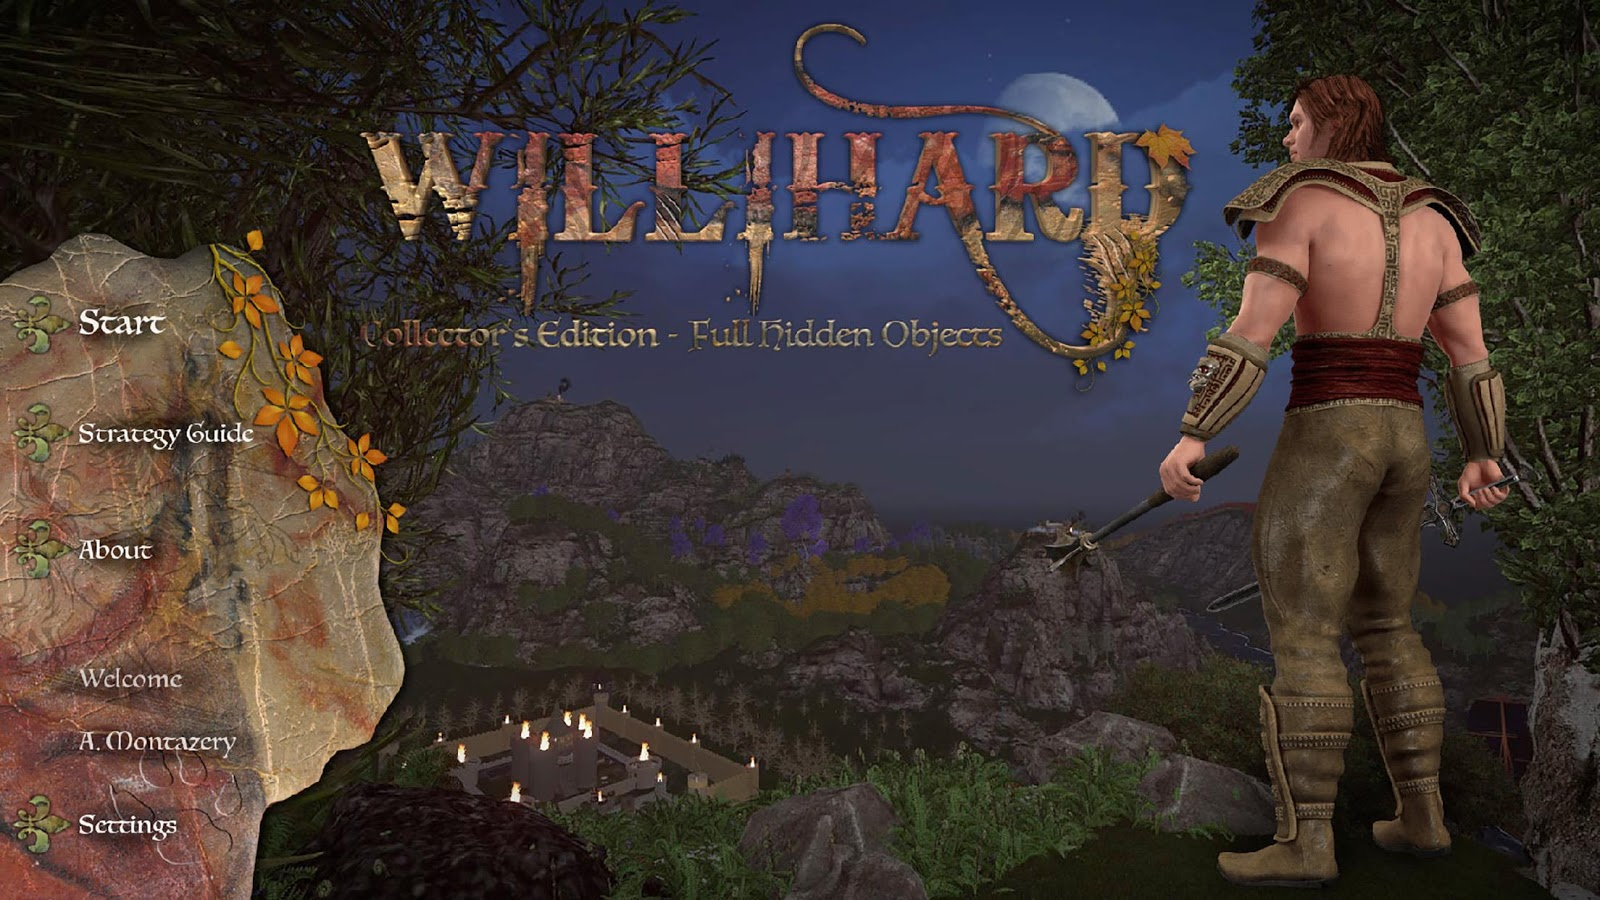 WILLIHARD (Hidden Objects) Screenshot 8